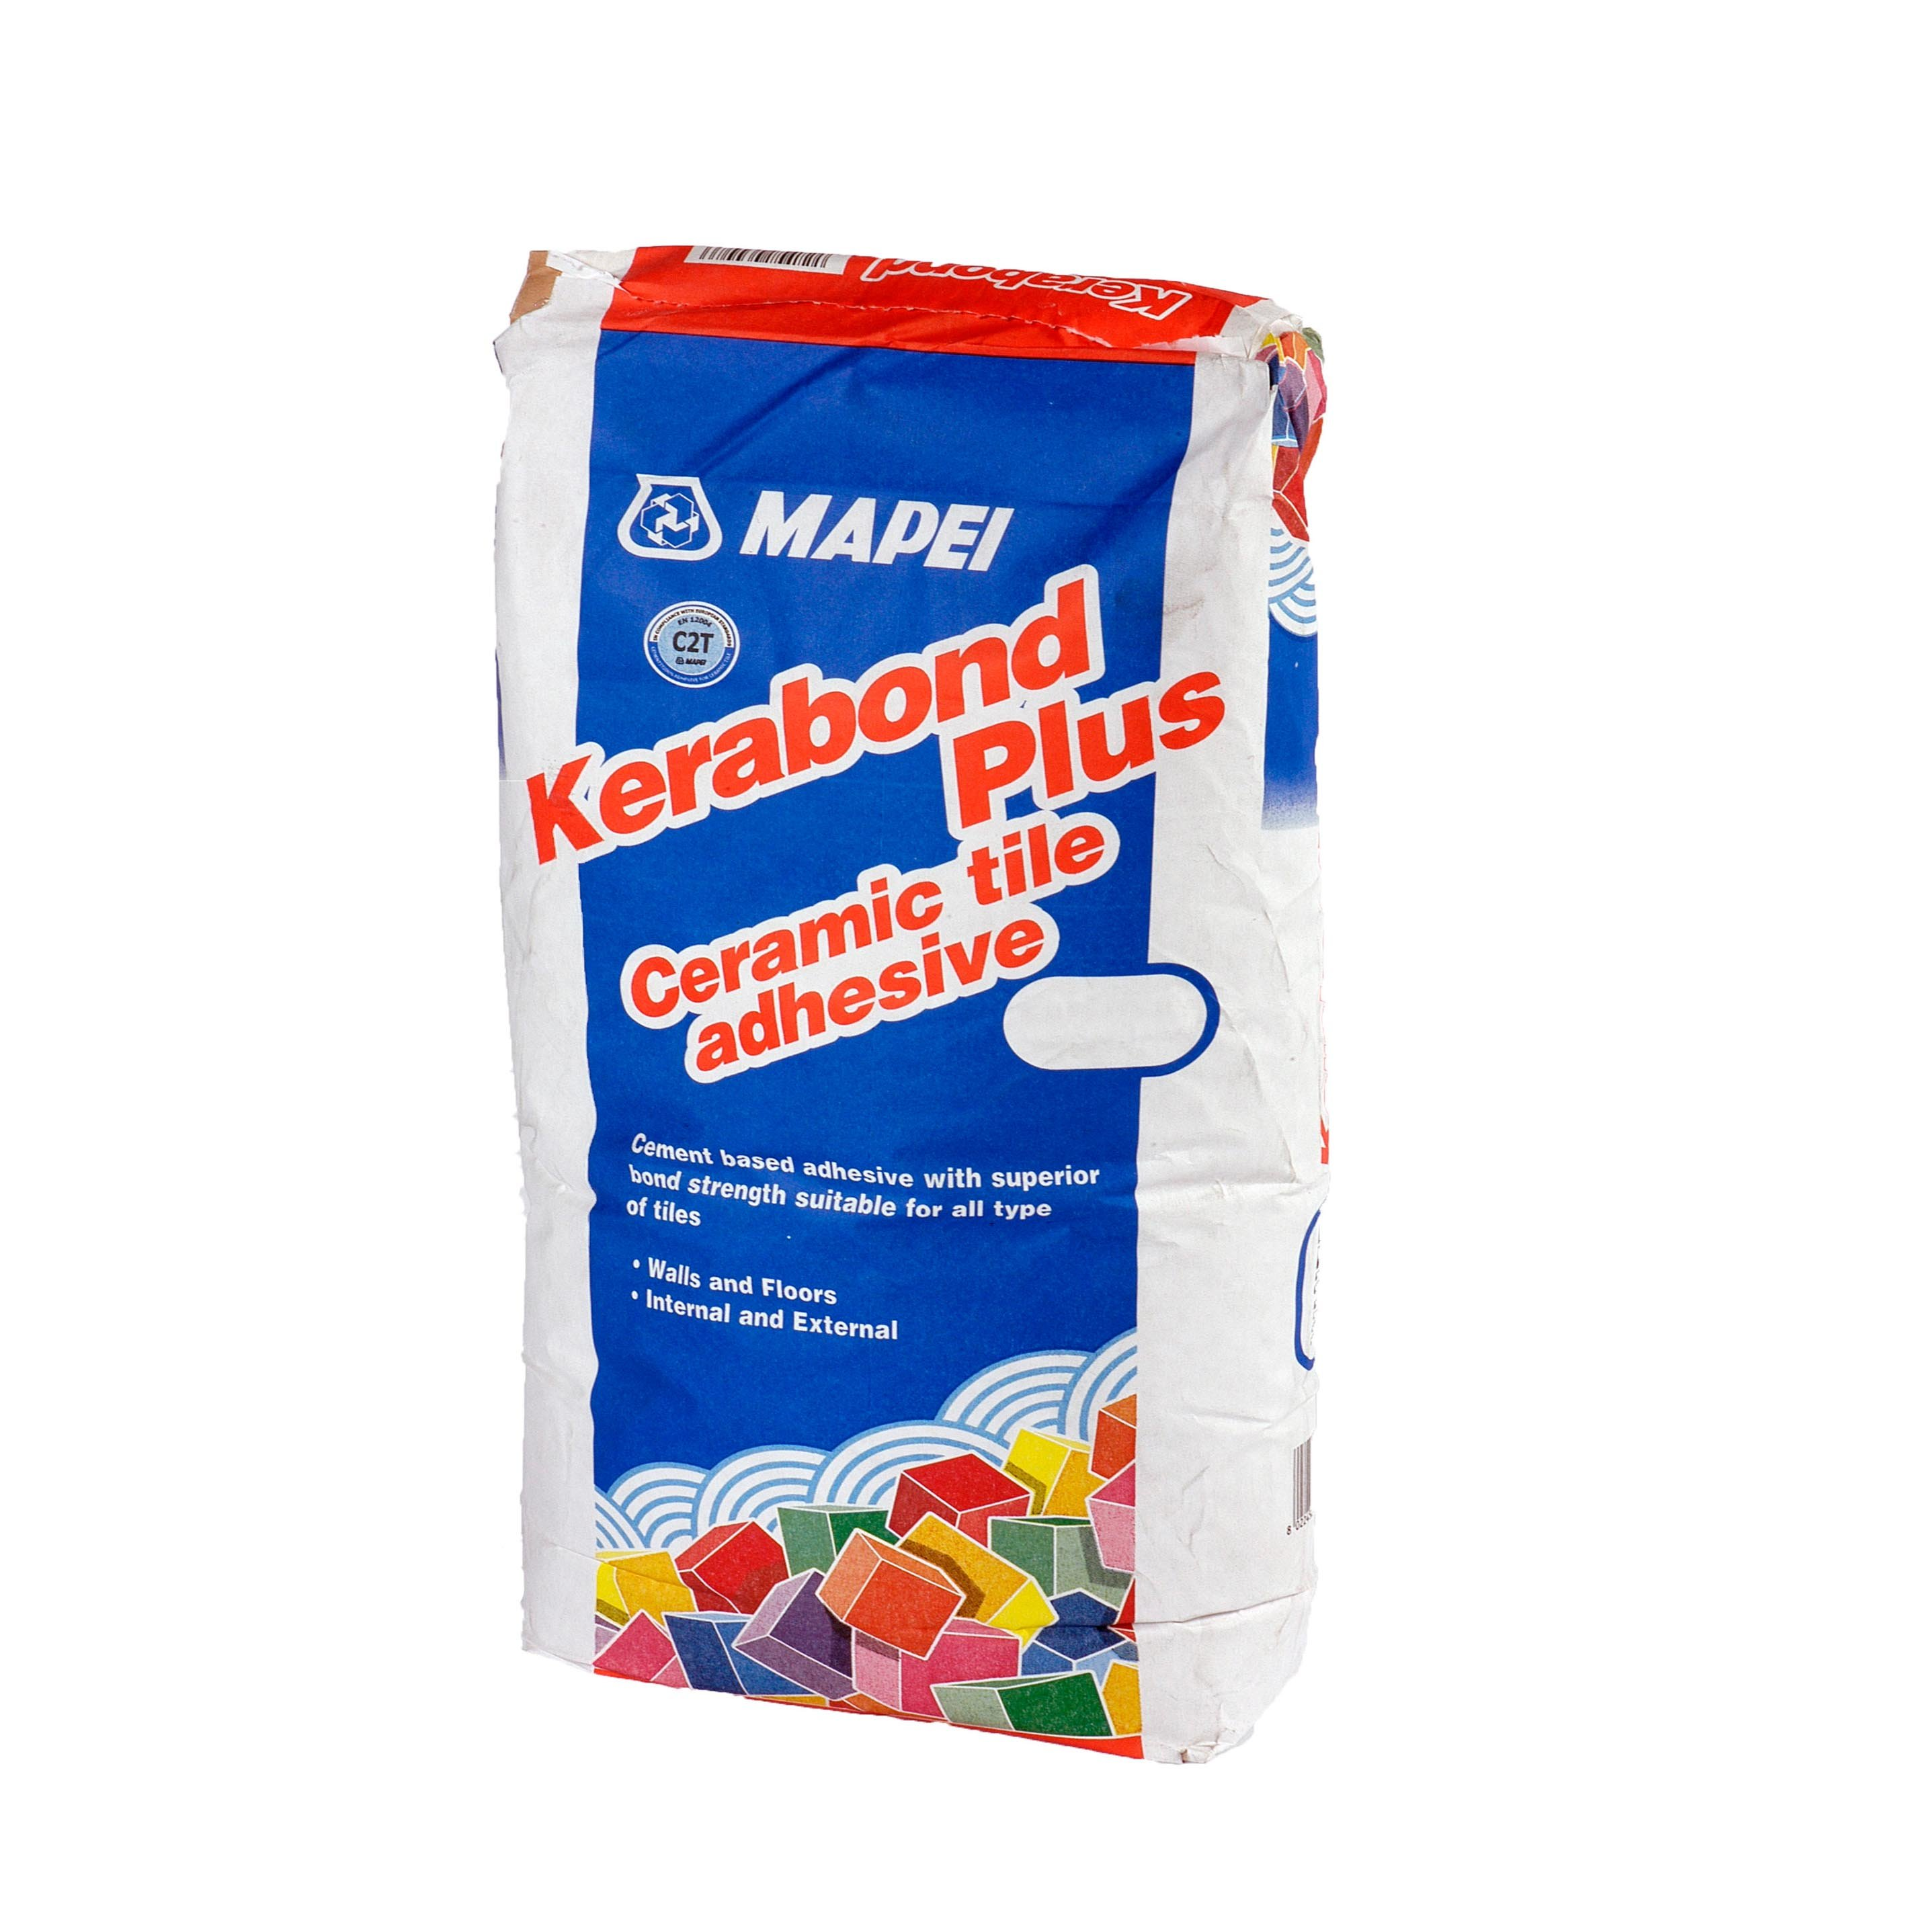 Install-Products-Photos Fixing-Products Gallery Mapei-Kerabond-Plus-Gallery